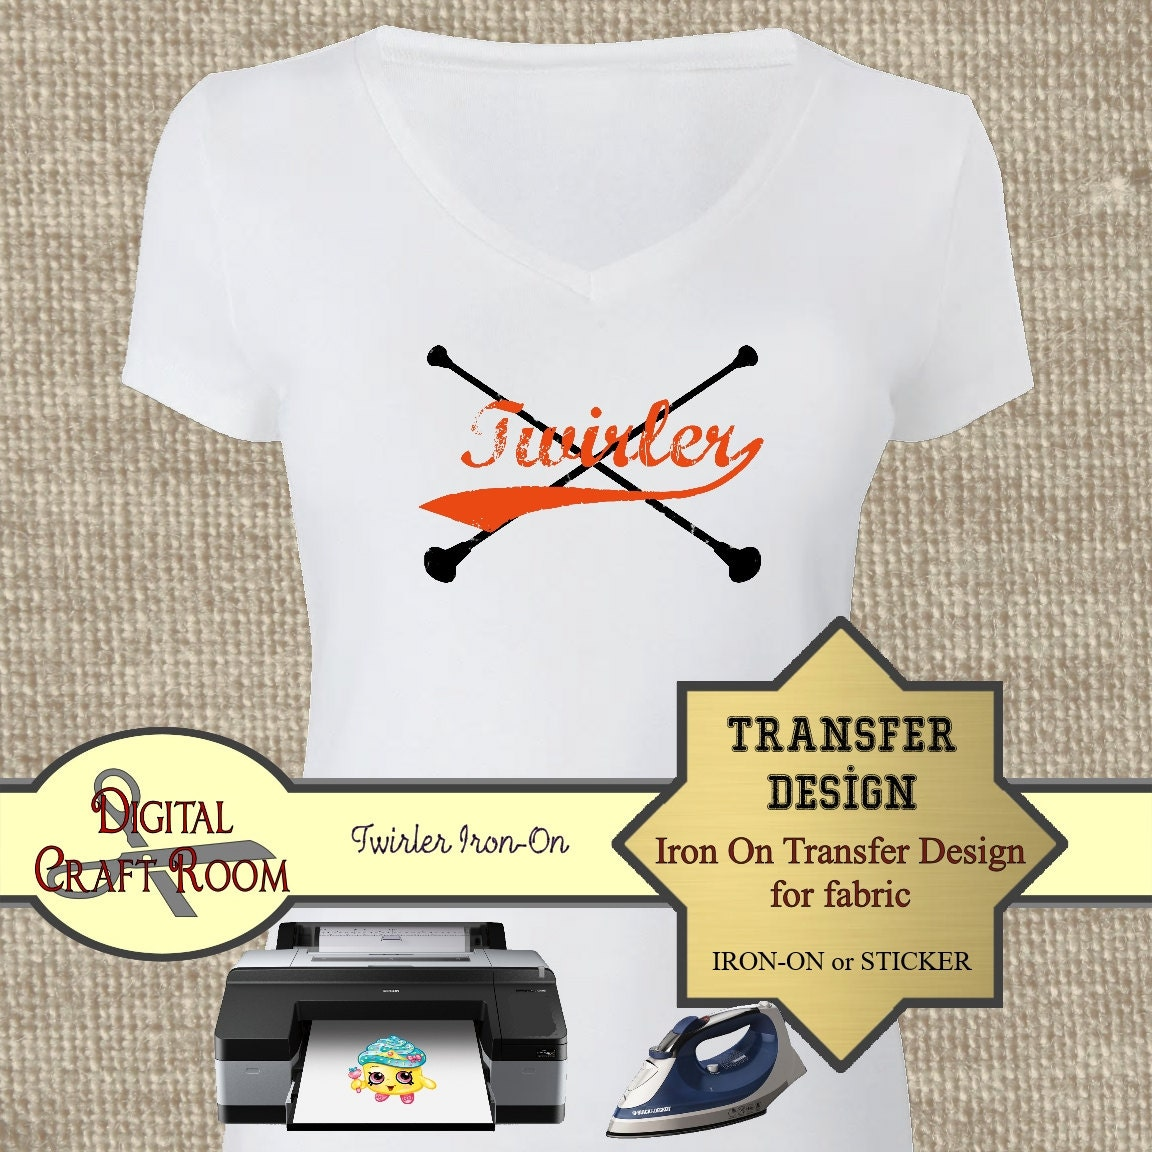 iron on transfer paper target Wrapping paper hp a4 iron on t shirt transfers 12 pack once you've printed your design onto the specialty paper you simply need to iron it on to transfer.